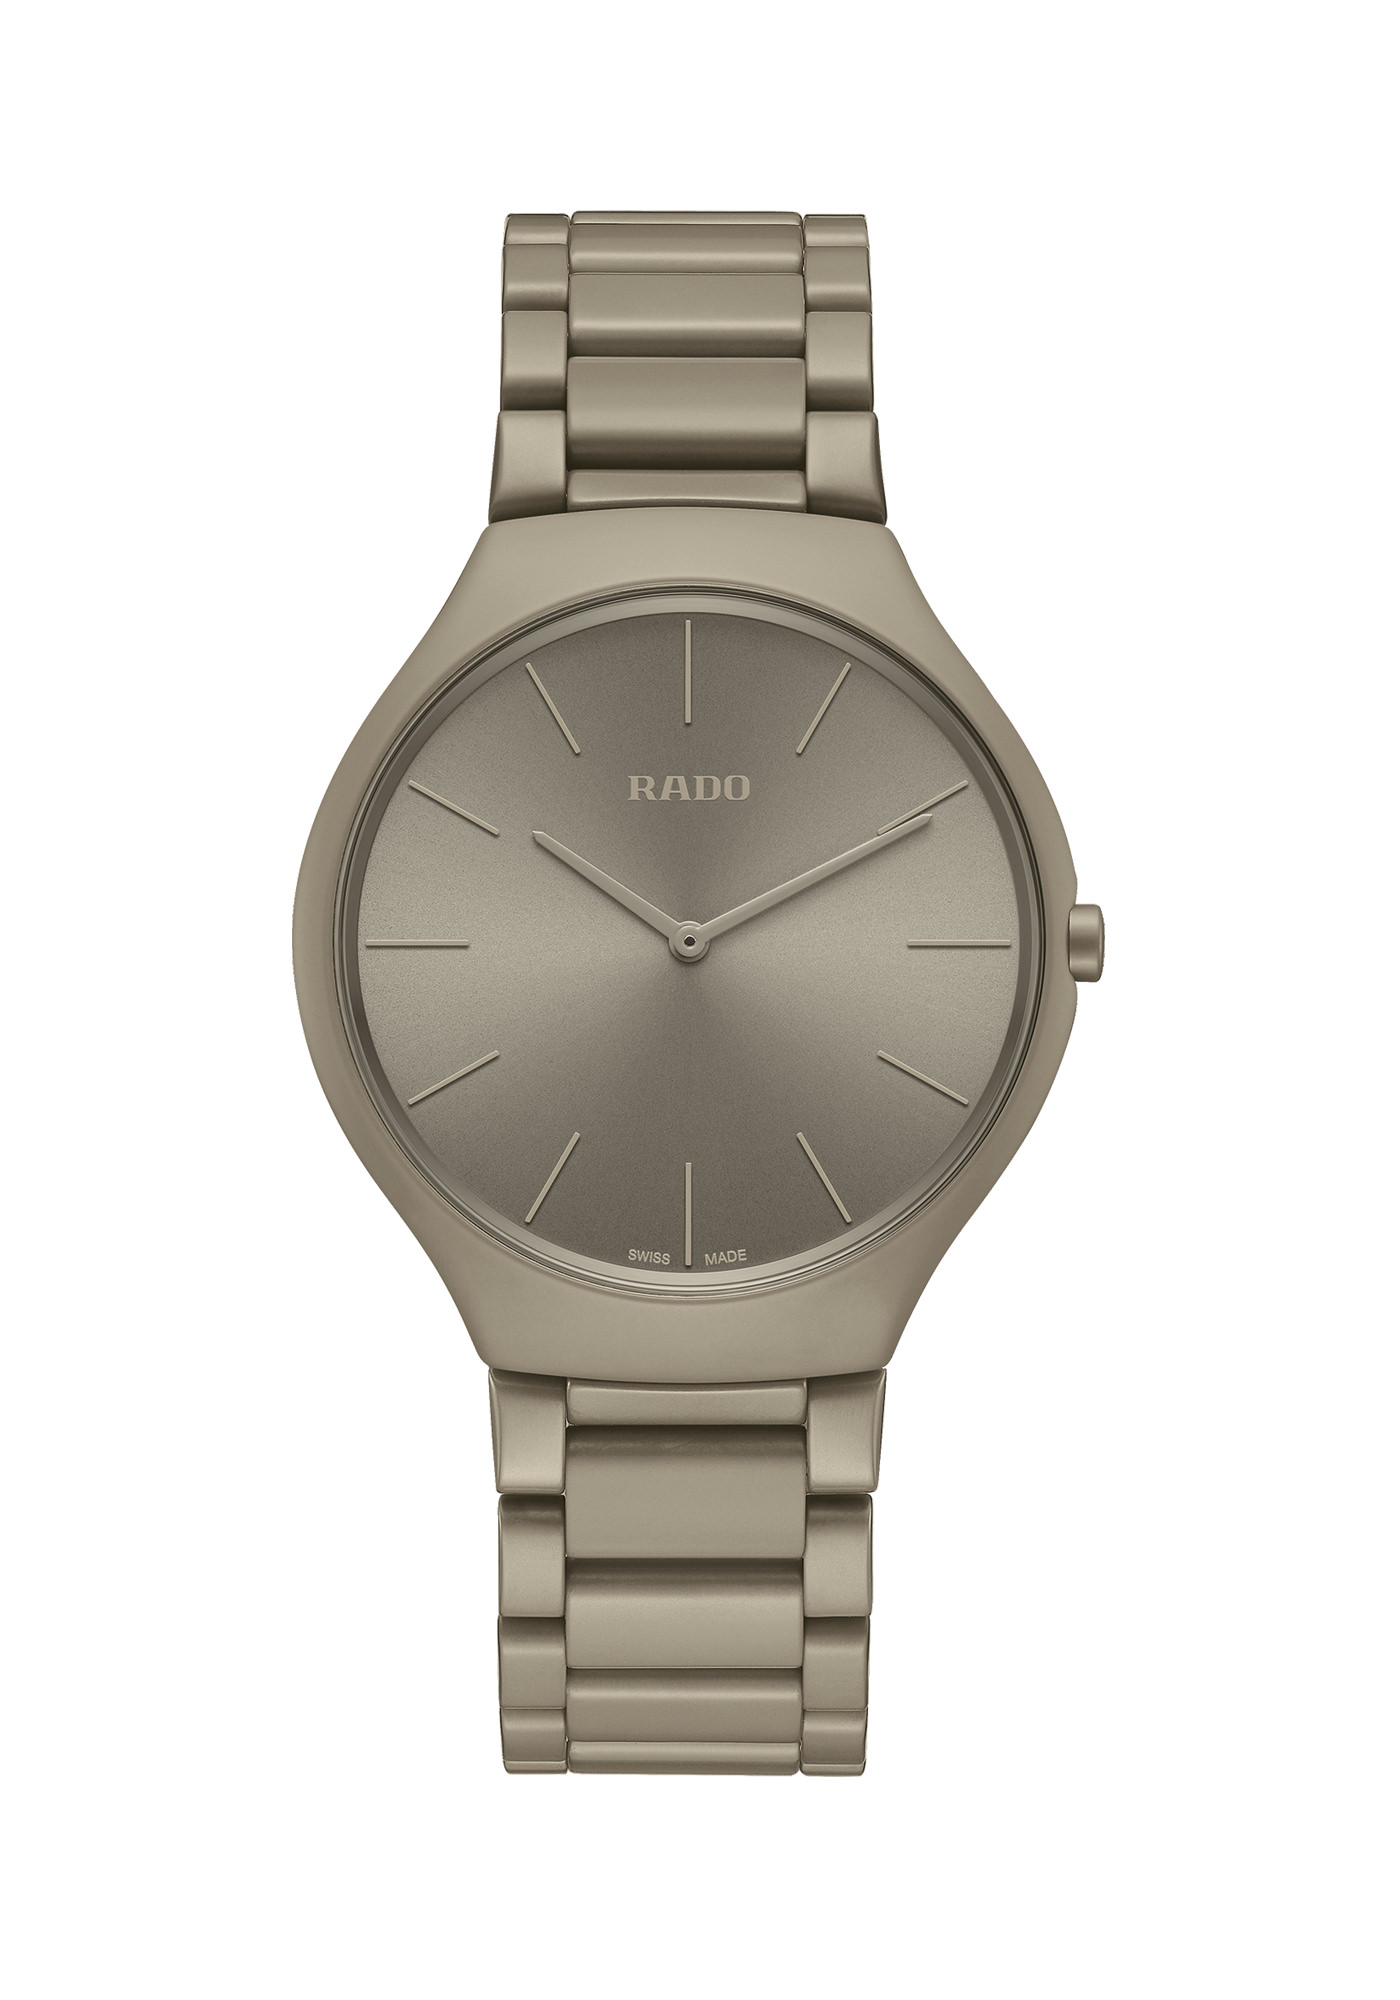 Rado Montres True Thinline Les Couleurs Le Corbusier Grey Brown Natural Umber 32141